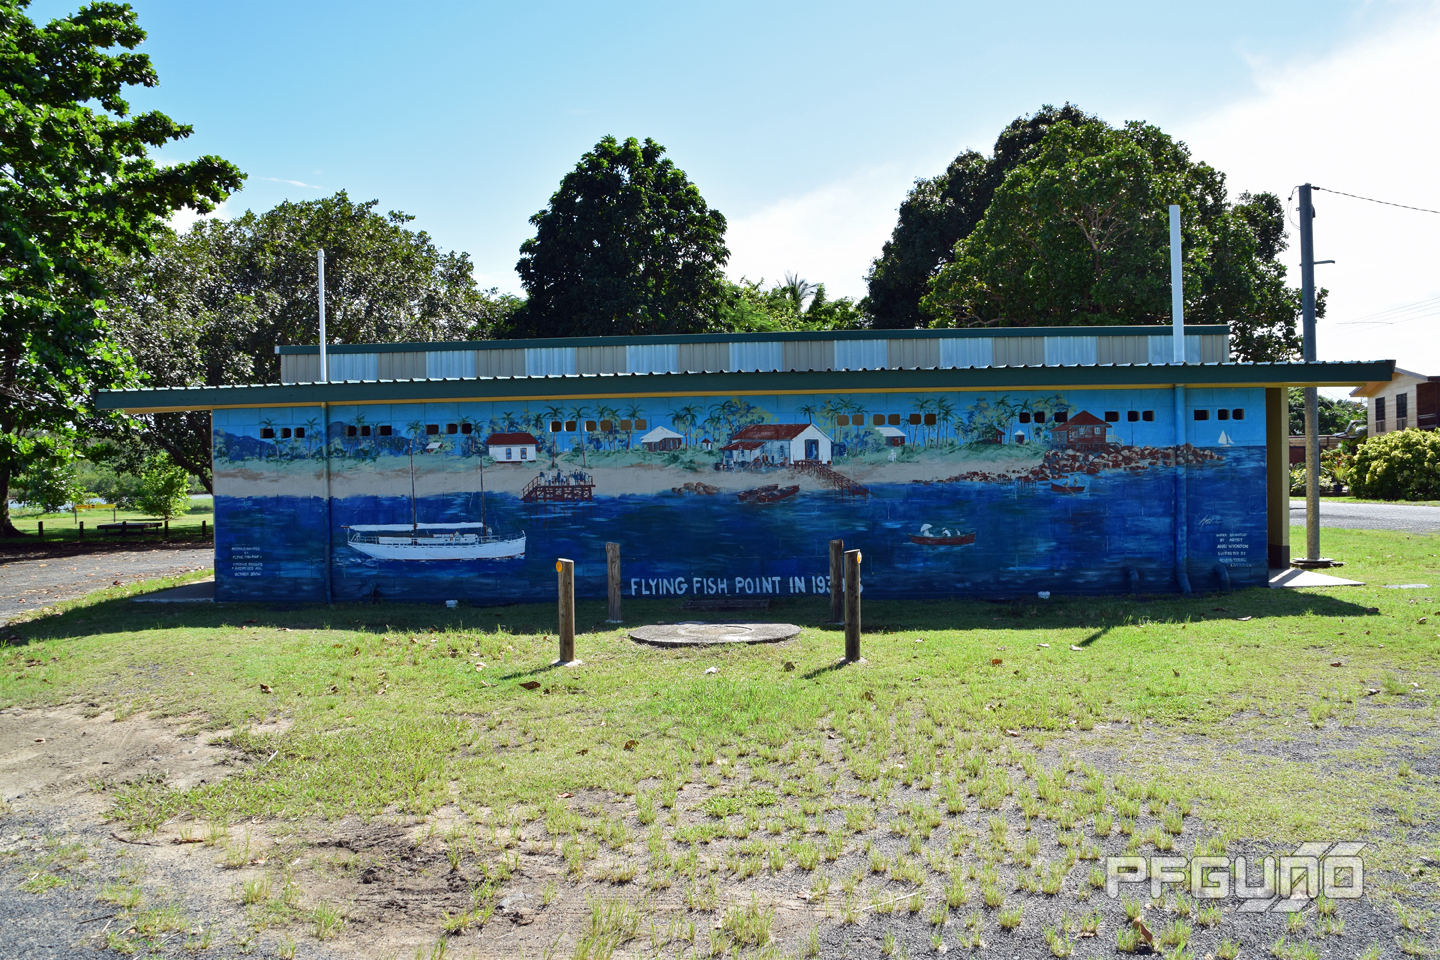 The Flying Fish Point Mural